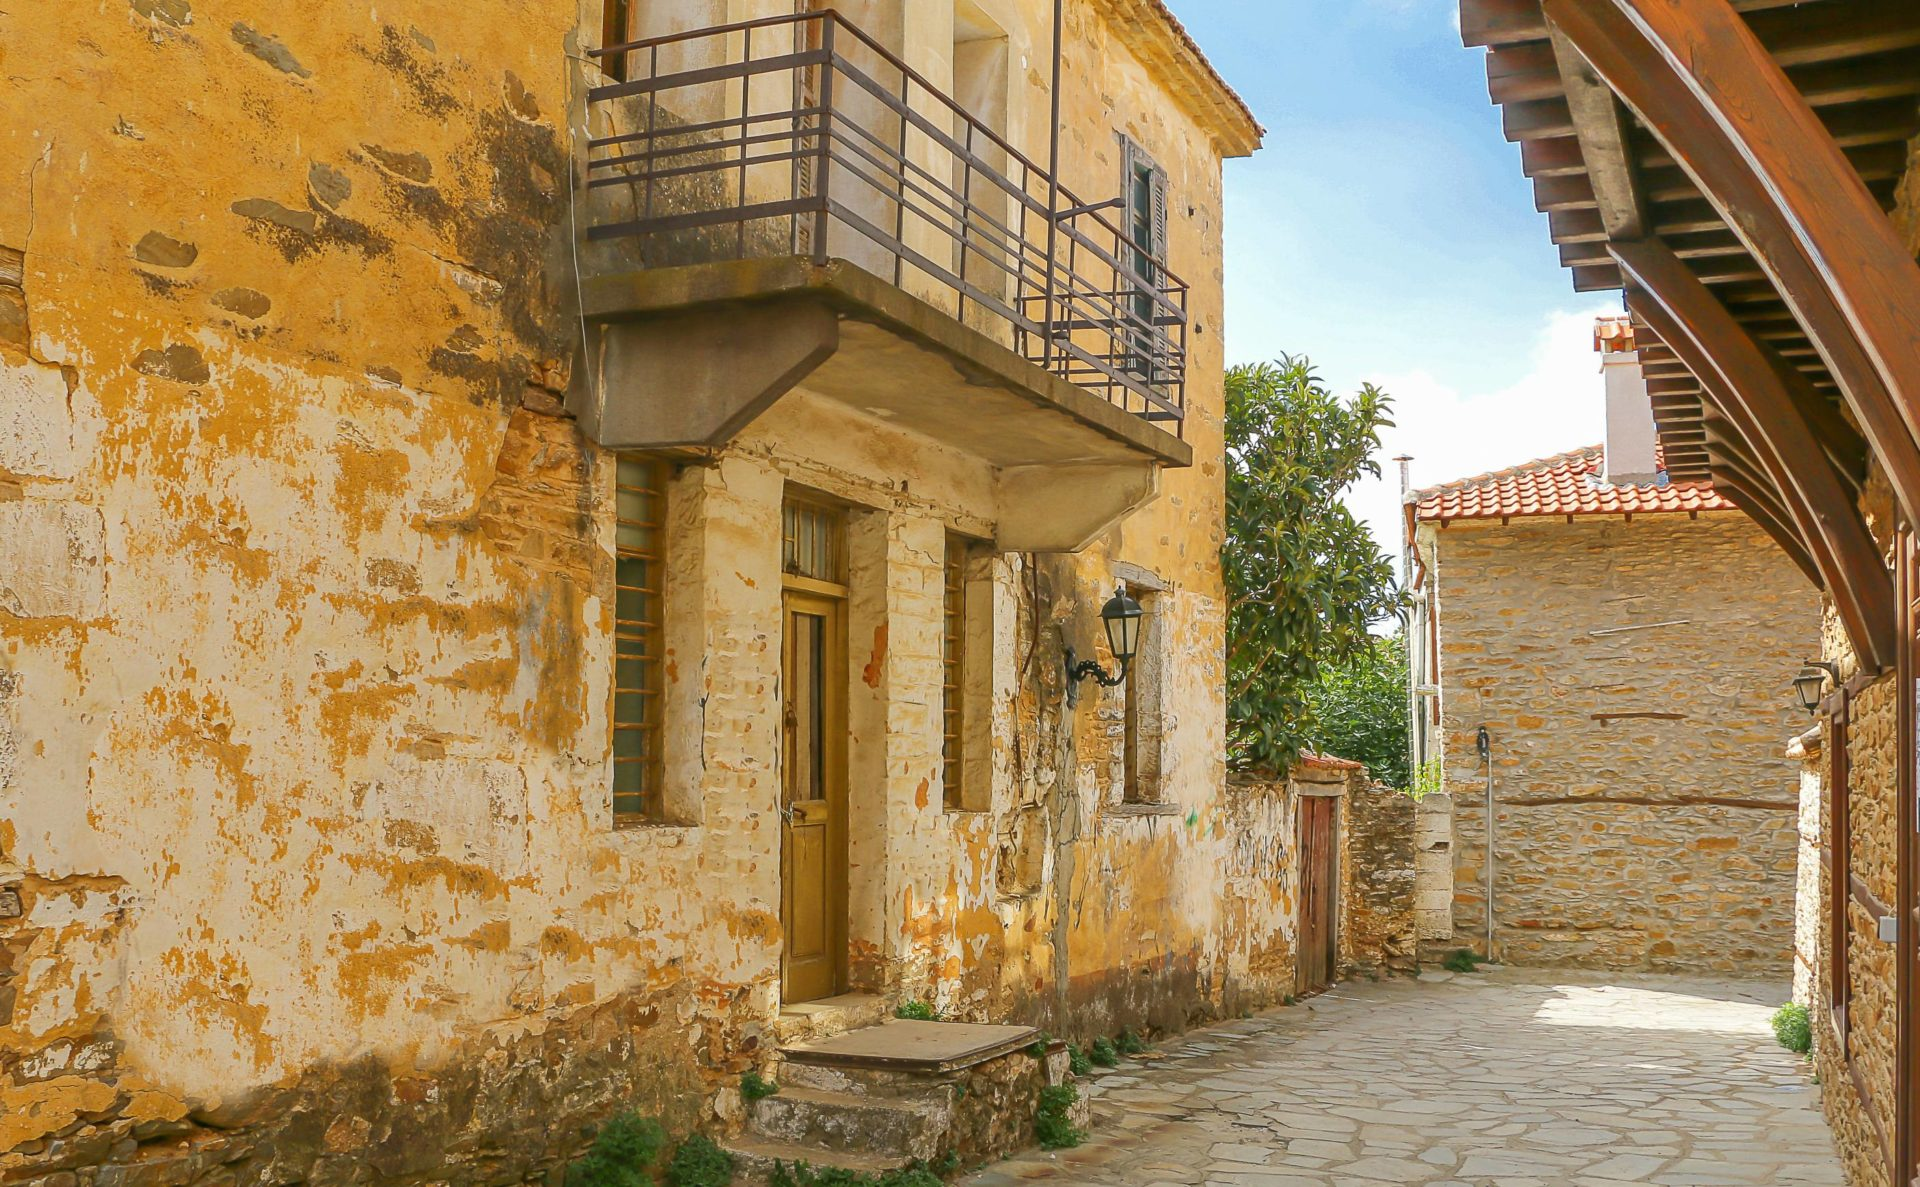 Polygyros has some of the cheapest homes in Greece, many built in traditional stone style.